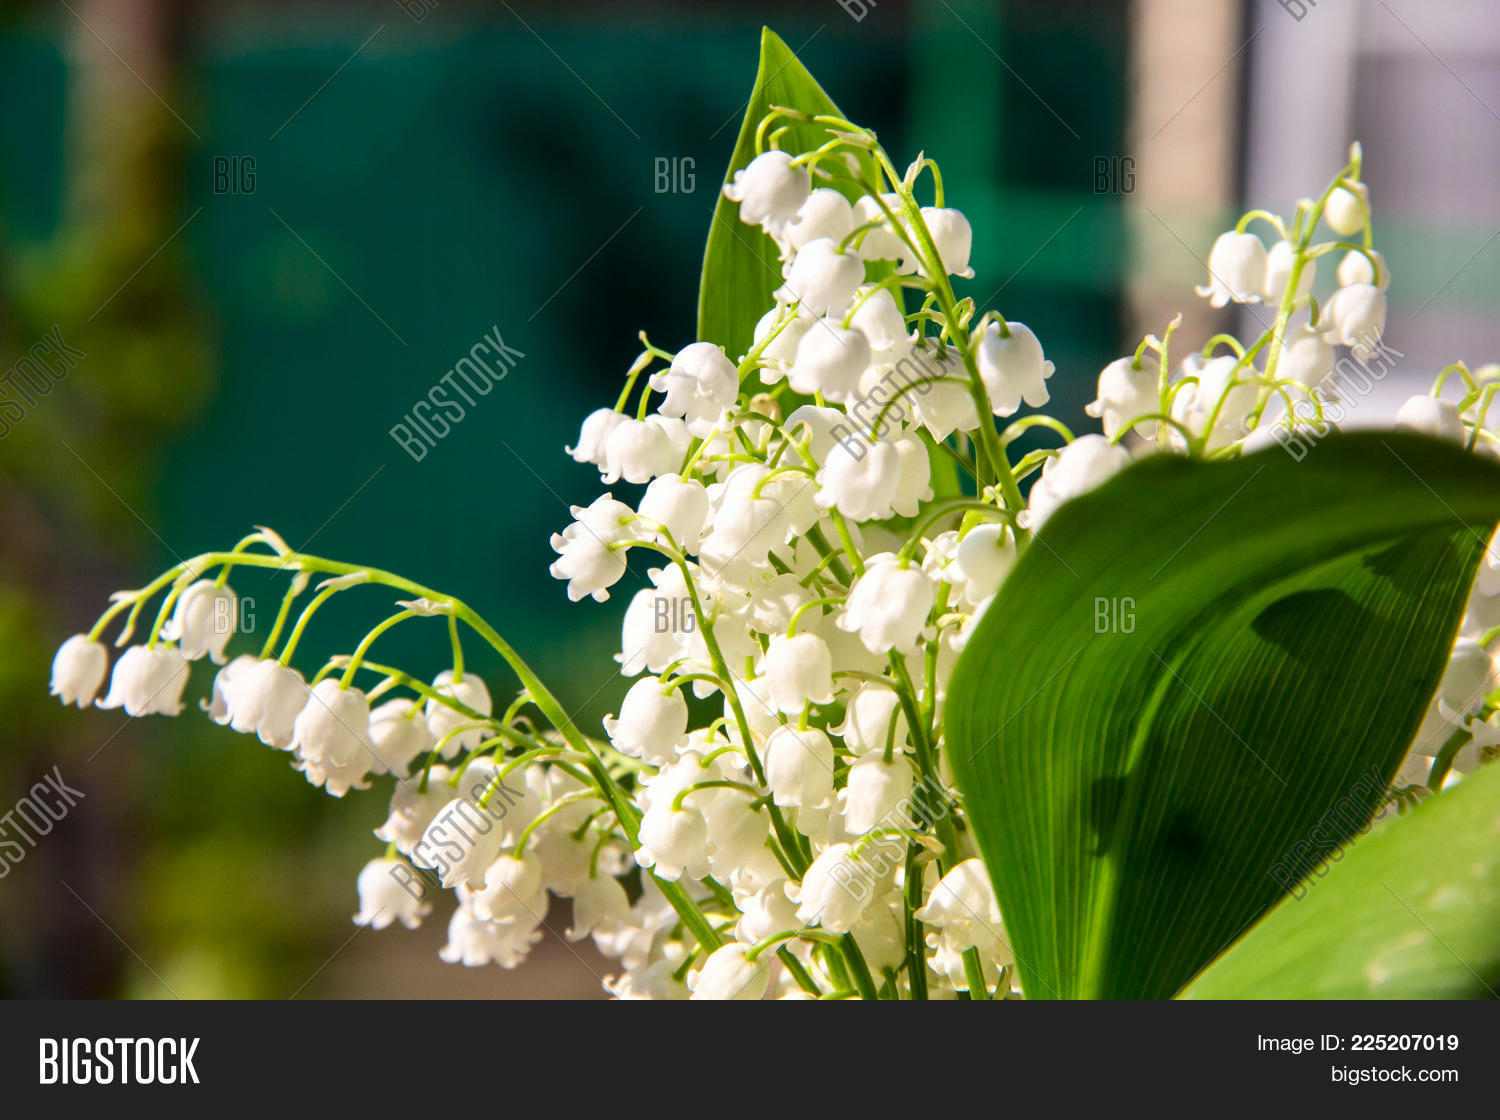 Lily Valley Flowers Image Photo Free Trial Bigstock